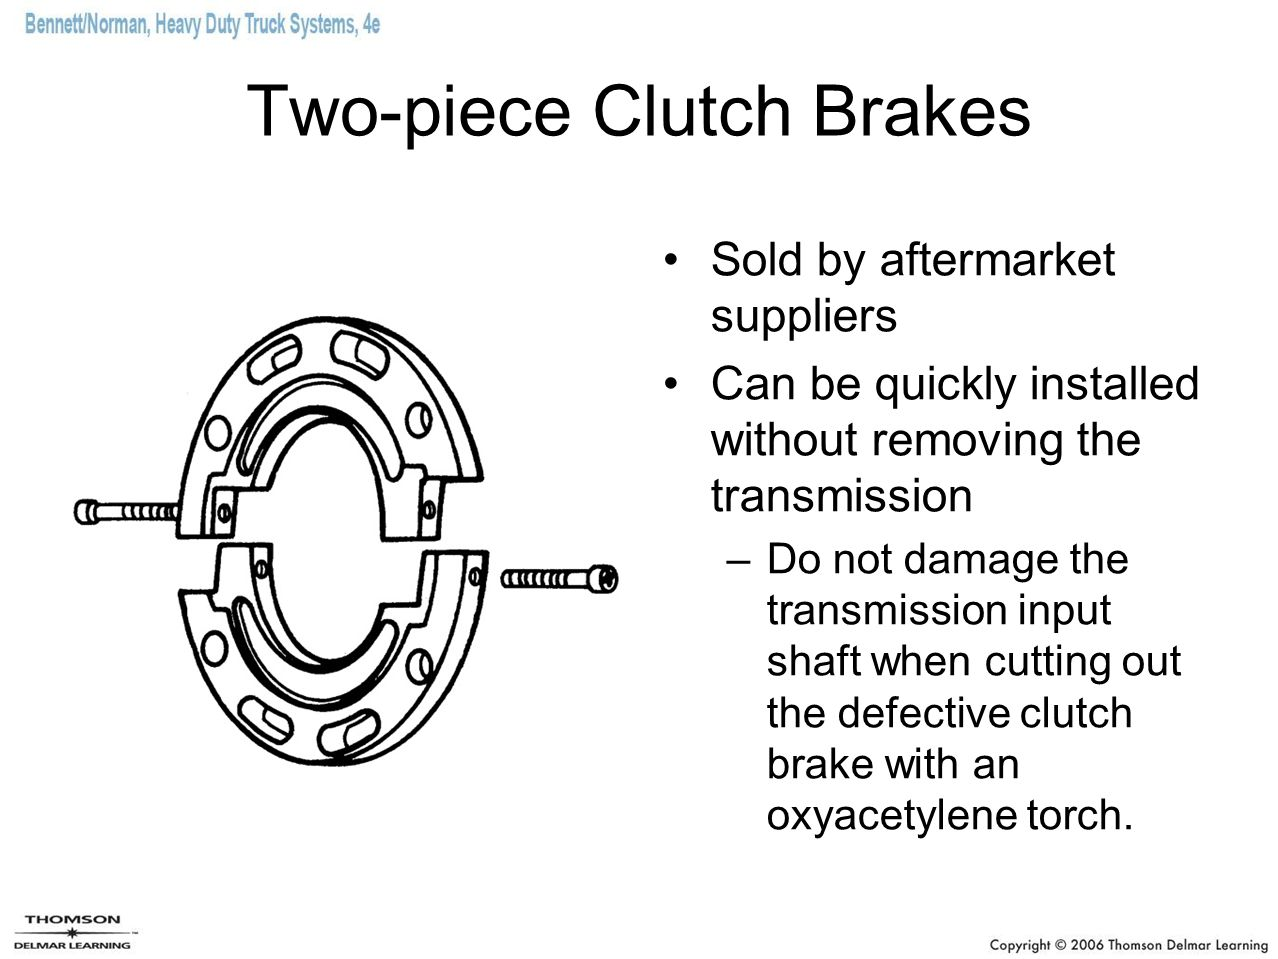 Two-piece Clutch Brakes